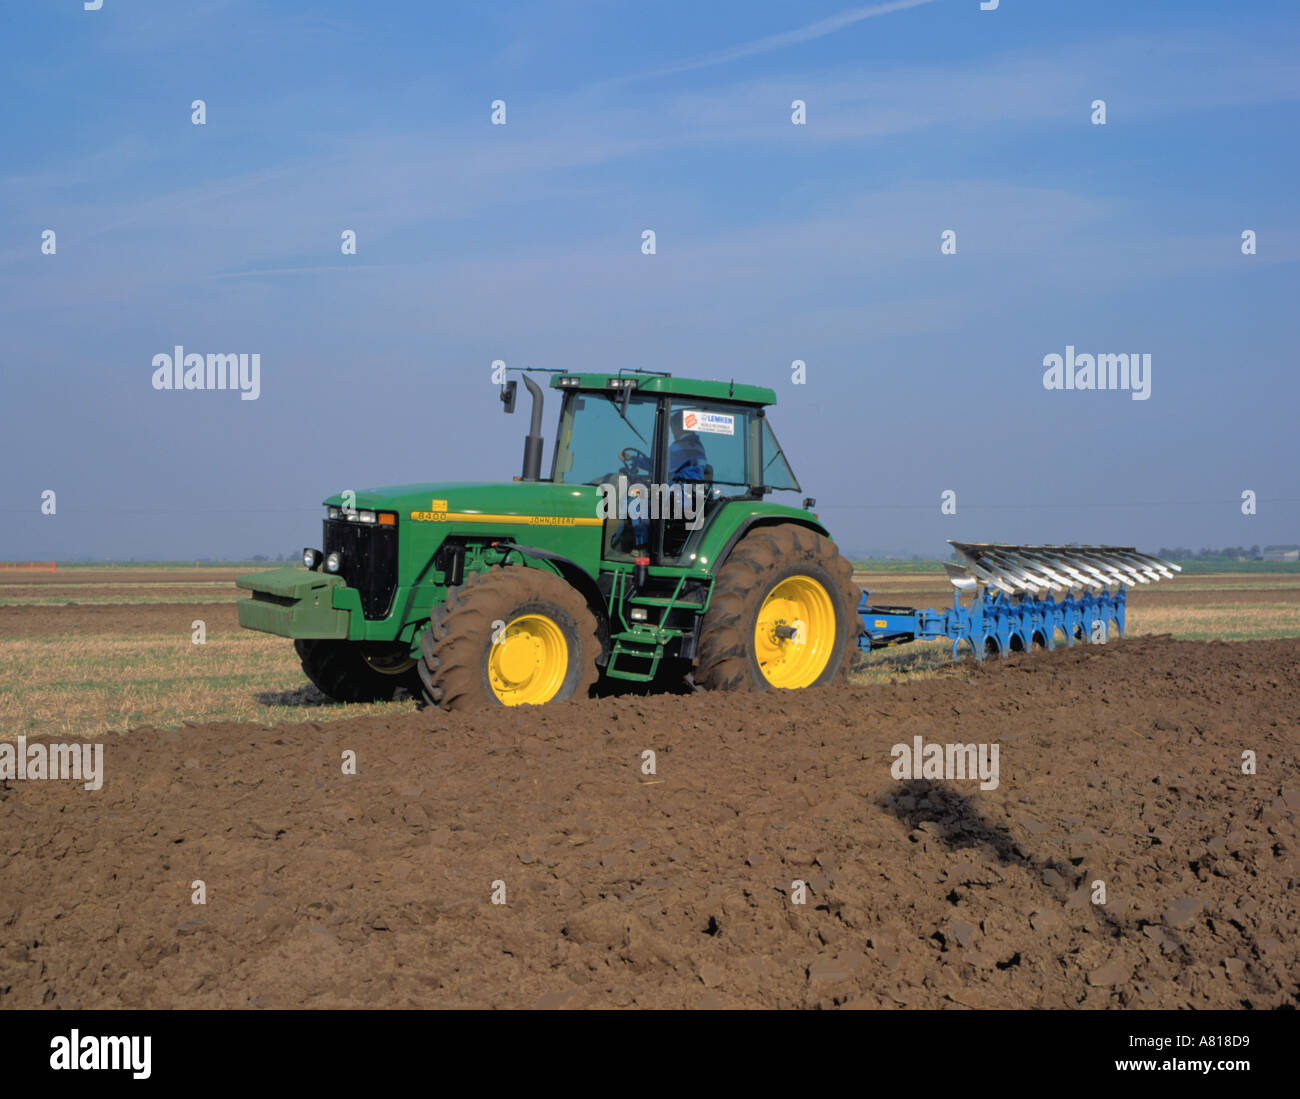 John Deere 8400 tractor with eight furrow reversible plough (State of the art tractor of traditional design). - Stock Image